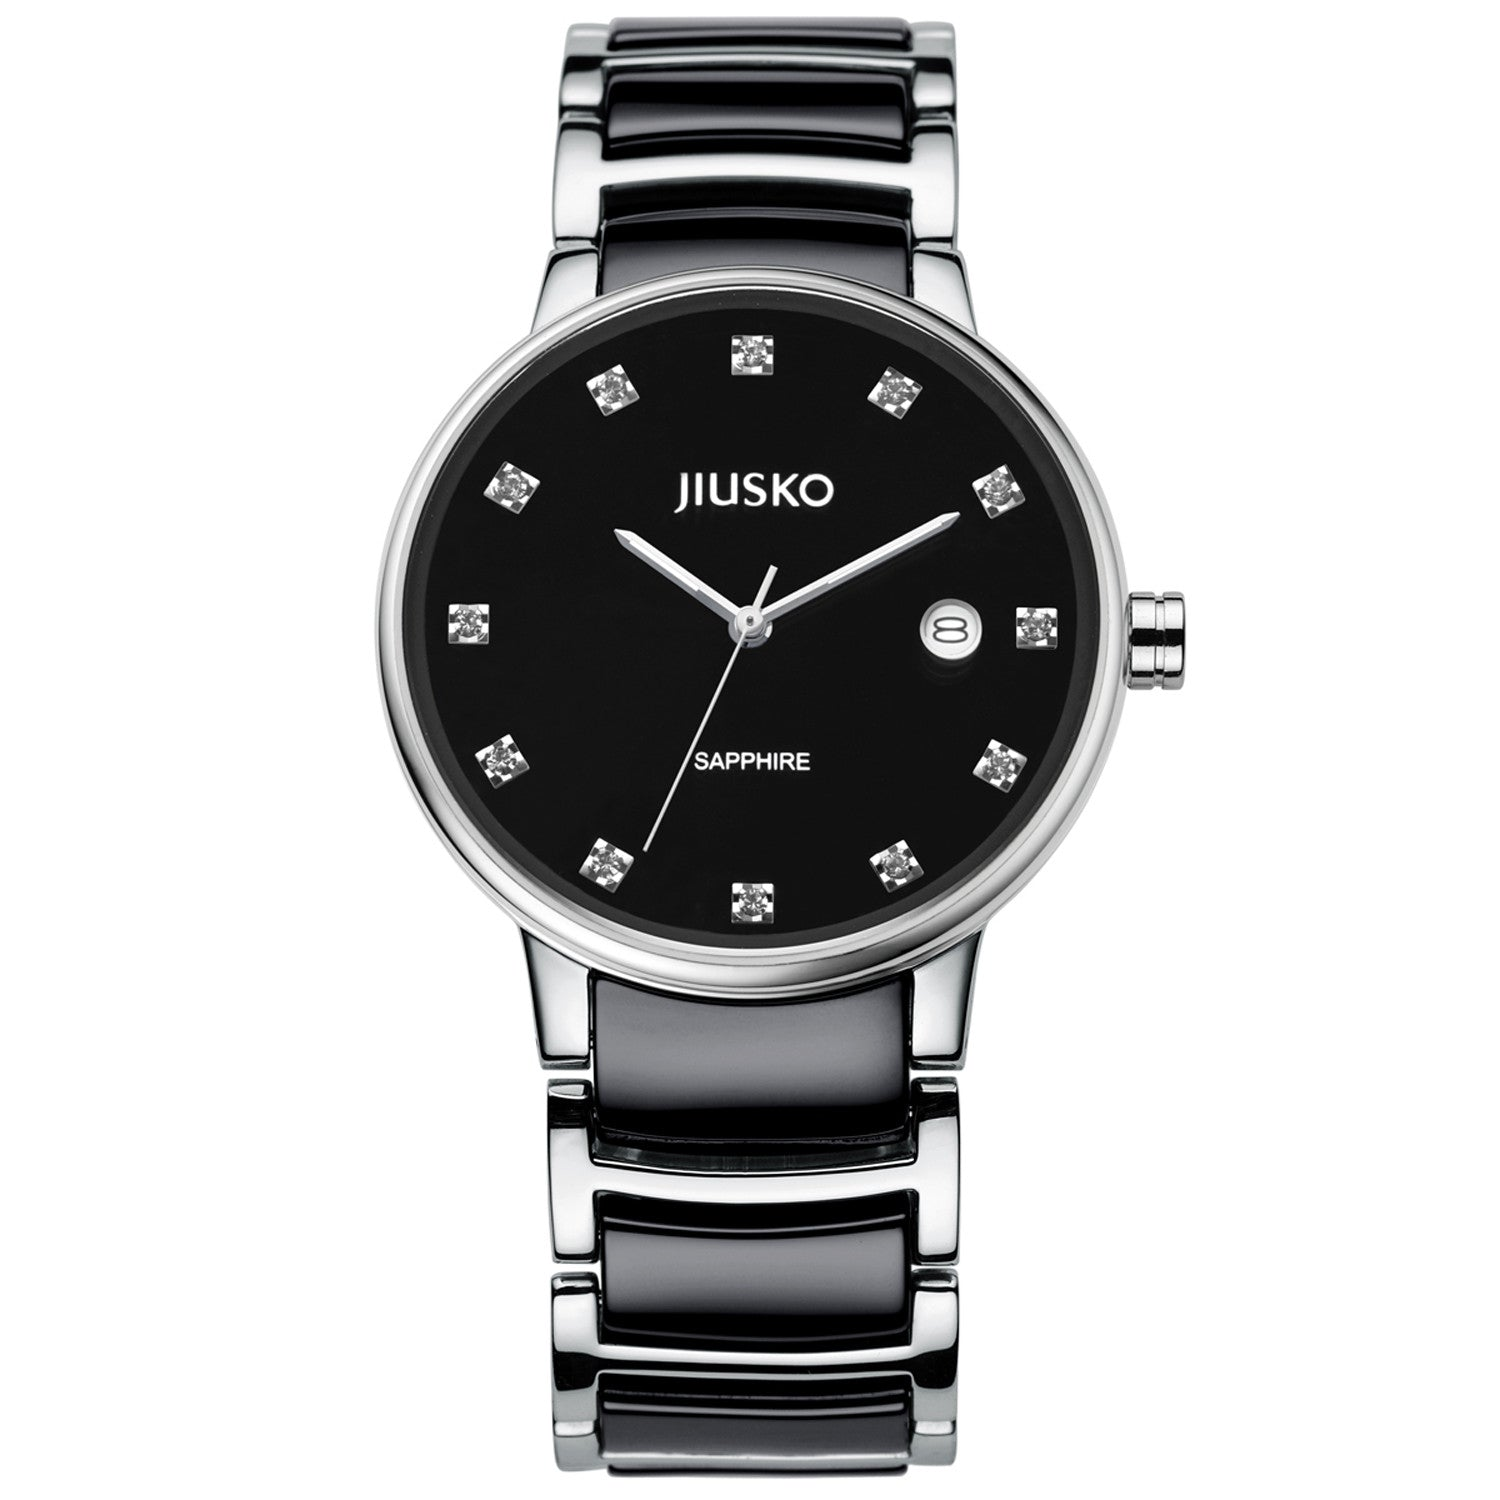 Jiusko Watch,Men's-Dress-Quartz-Ceramic-Stainless Steel-50m-90MSB02